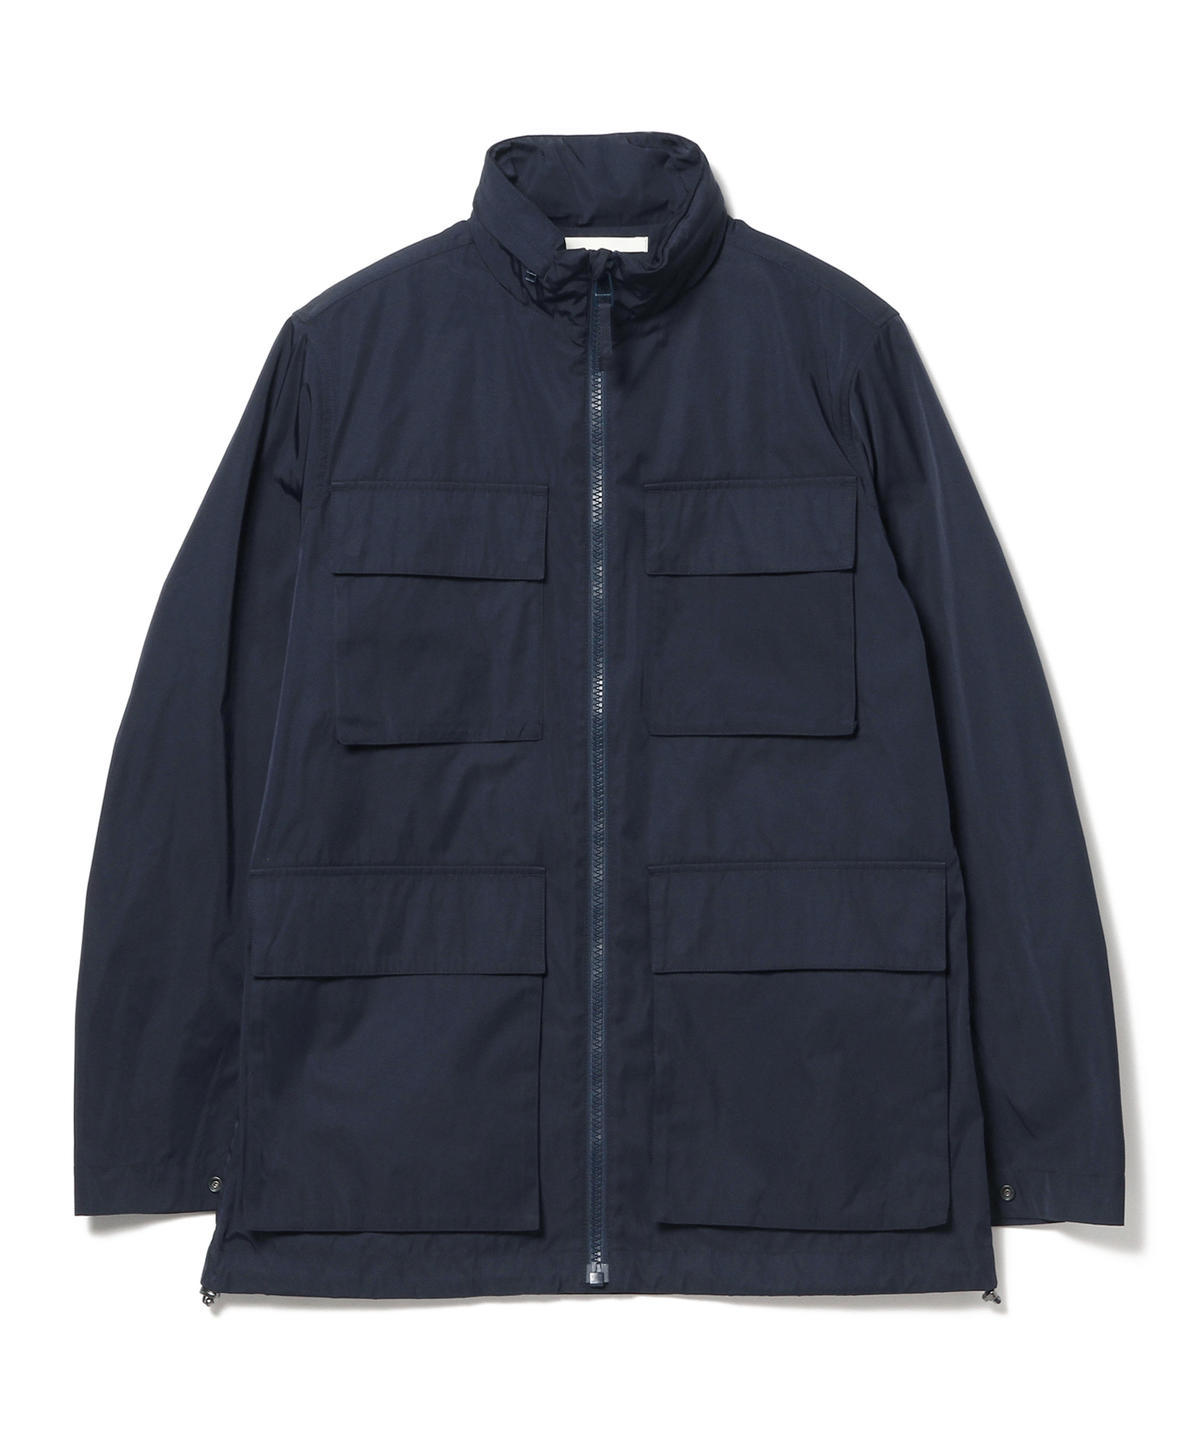 Skipper Double Dyed Jacket